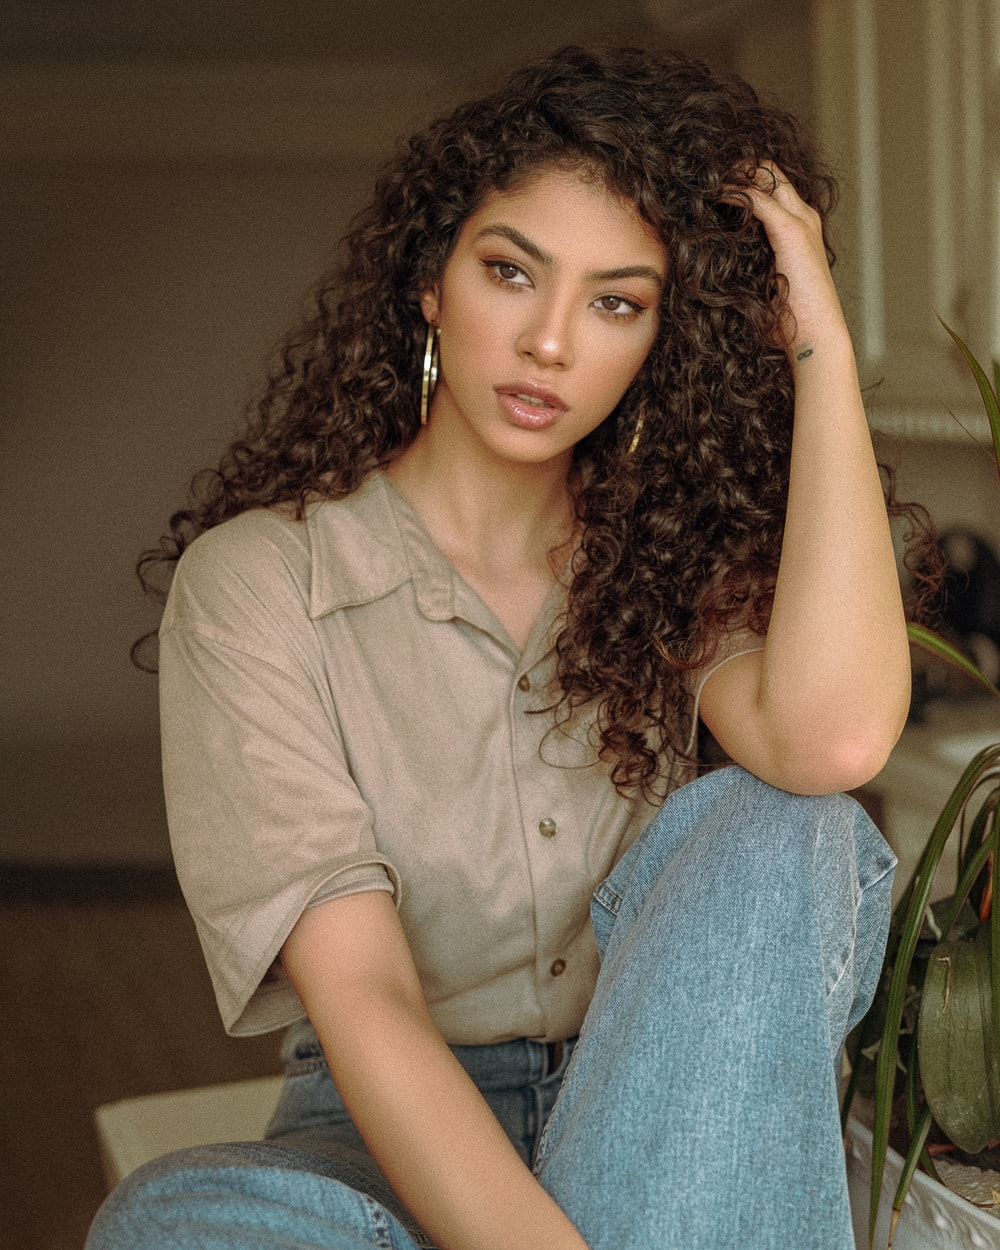 woman in brown button up shirt and blue denim jeans